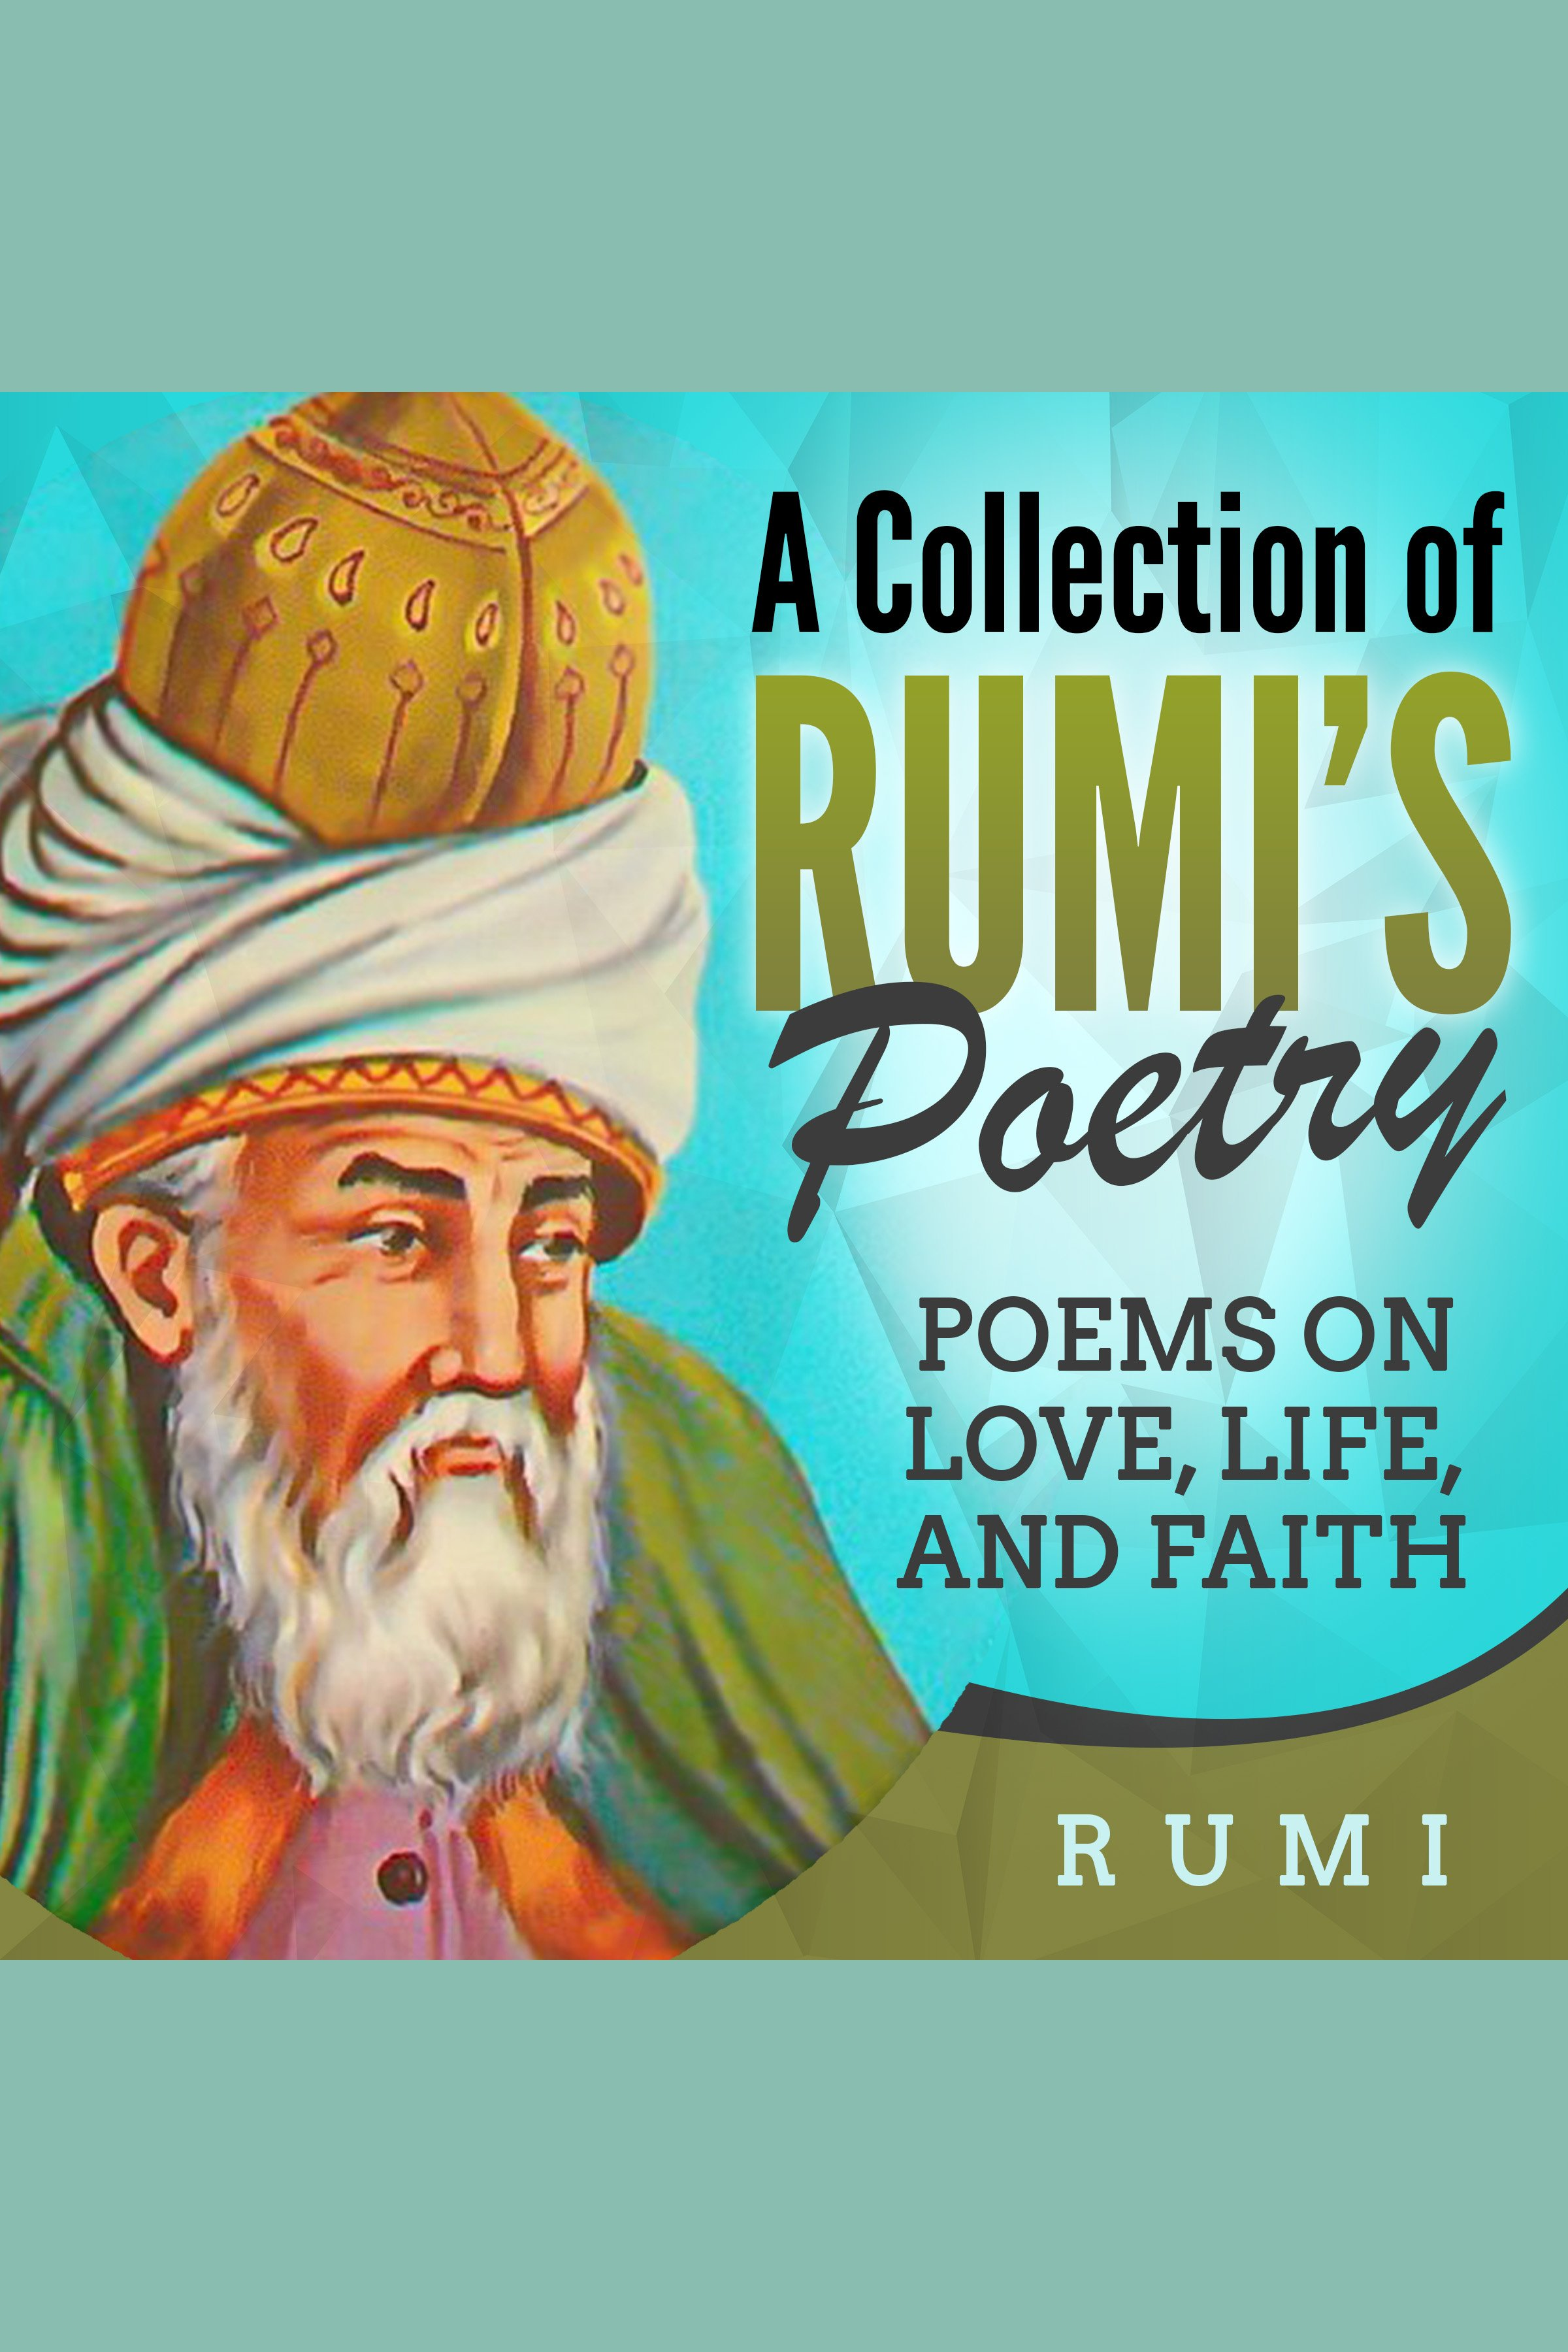 Collection of Rumi's Poetry, A Poems on Love, Life, and Faith